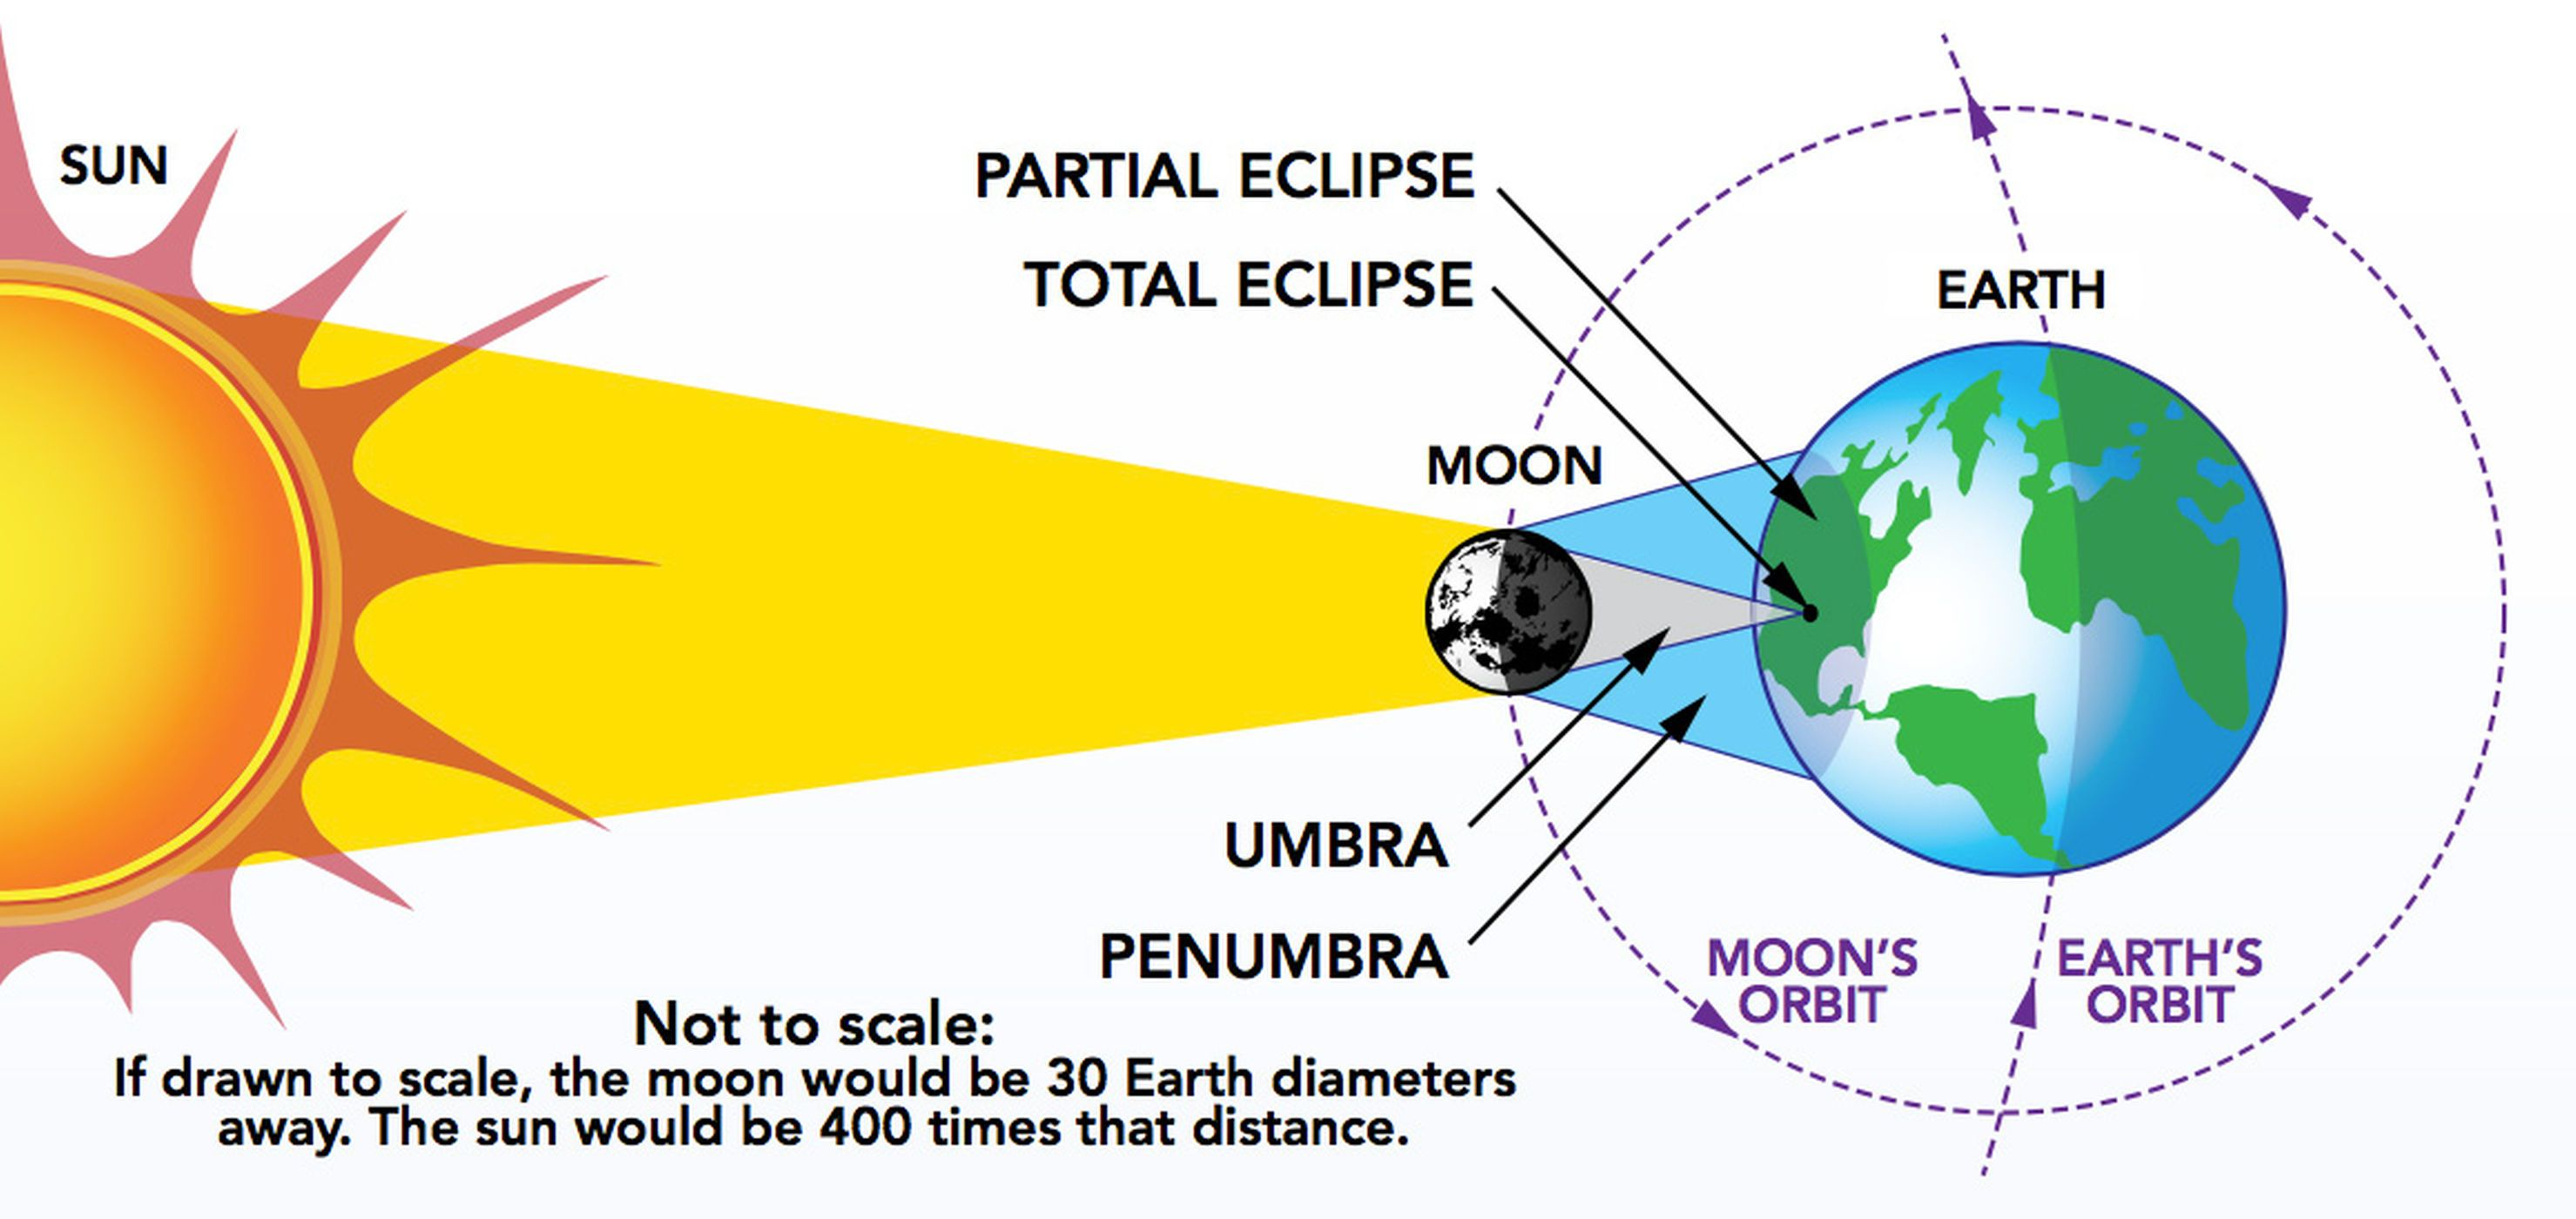 medium resolution of get ready for the great american total solar eclipse of august 21 2017 with this photo guide containing paths viewing maps and more